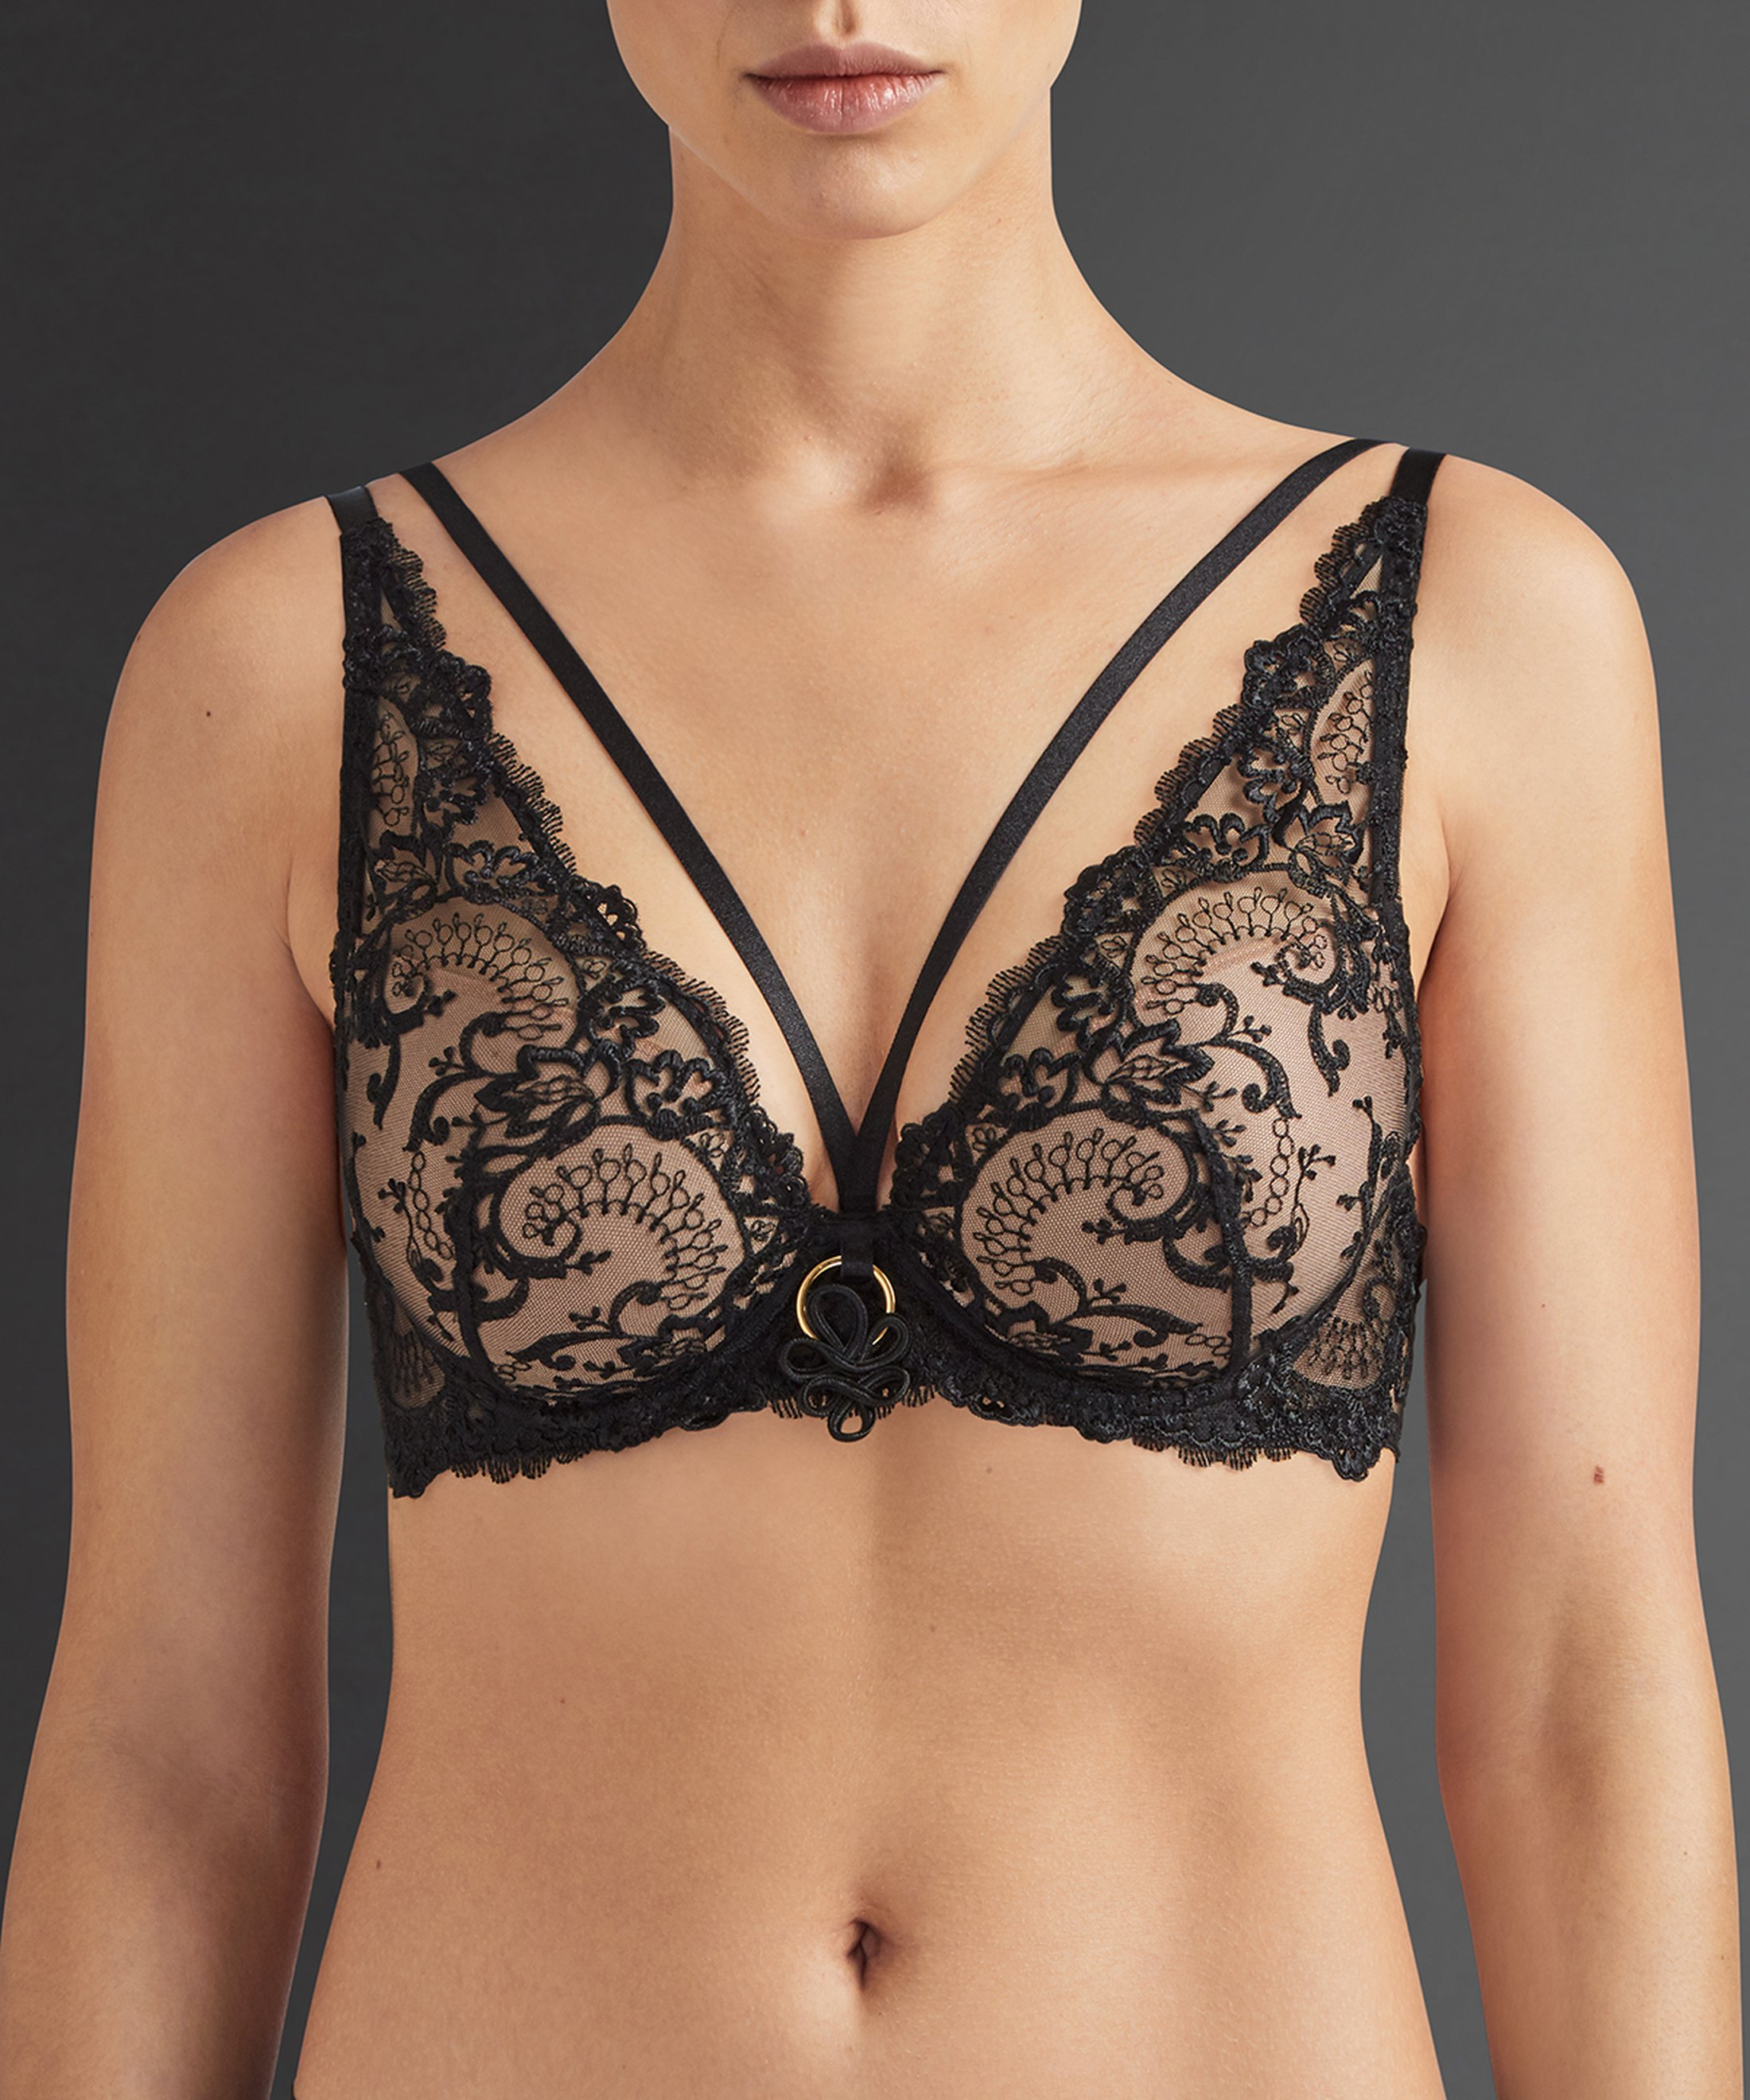 LA REINE DE LA NUIT Scarf push-up bra Lyrique Black | Aubade